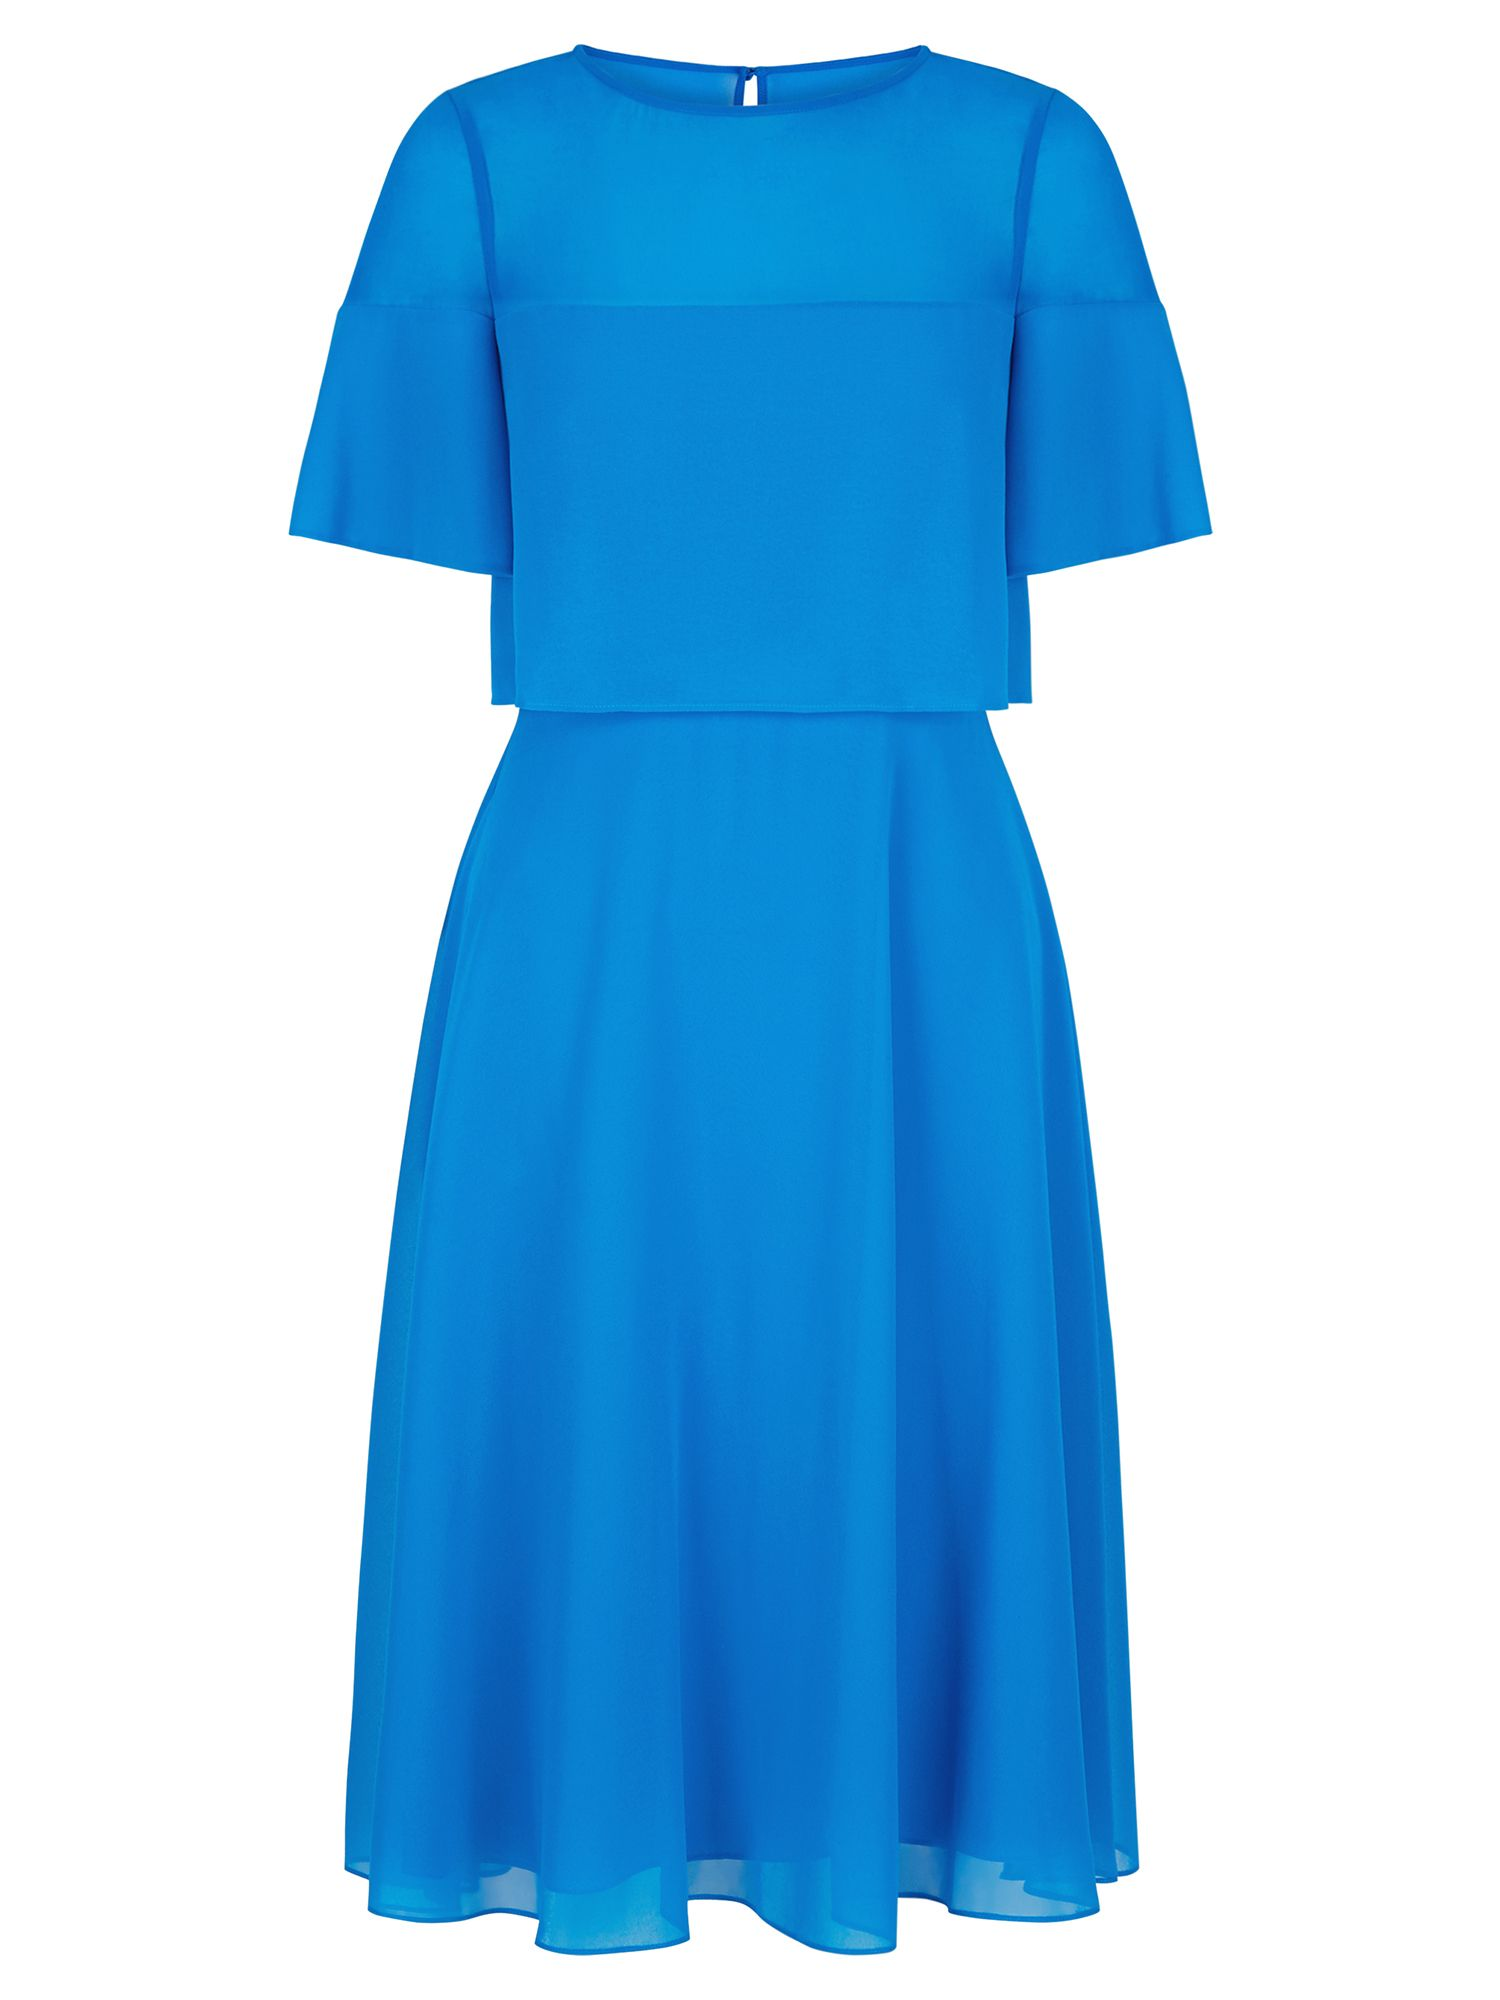 Hobbs Emmeline Dress, Blue